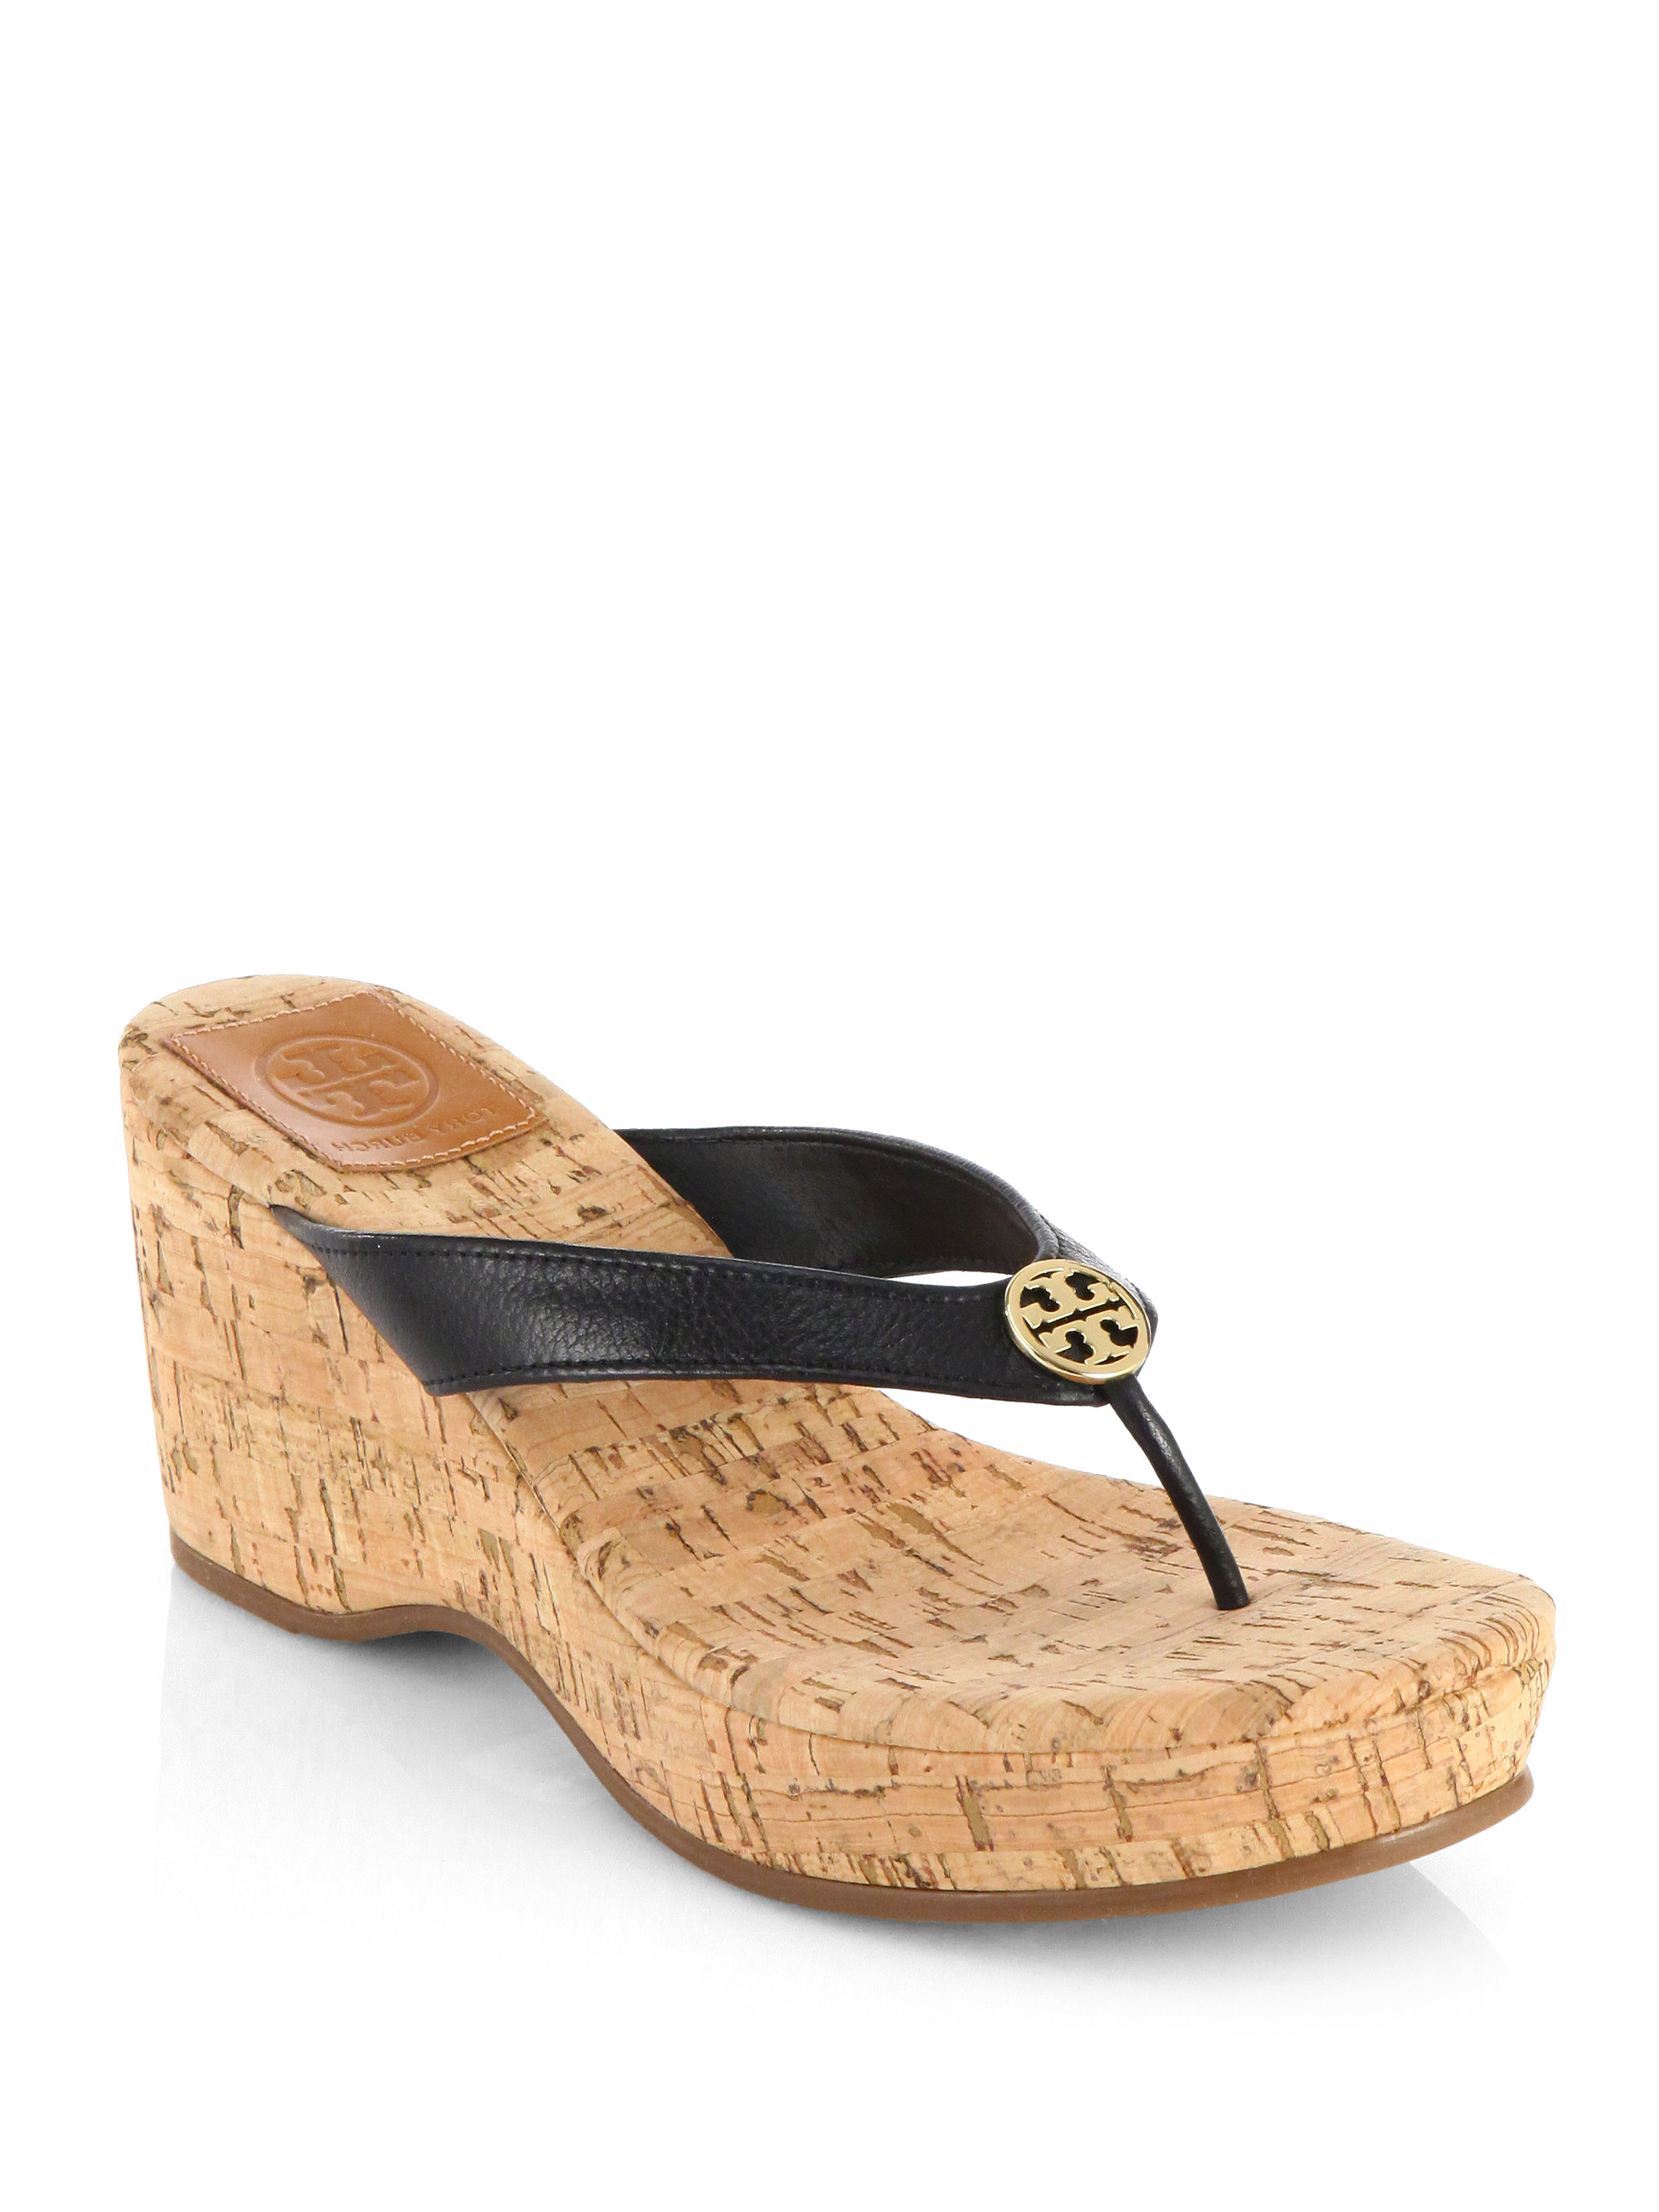 tory burch suzy leather cork wedge sandals in black lyst. Black Bedroom Furniture Sets. Home Design Ideas